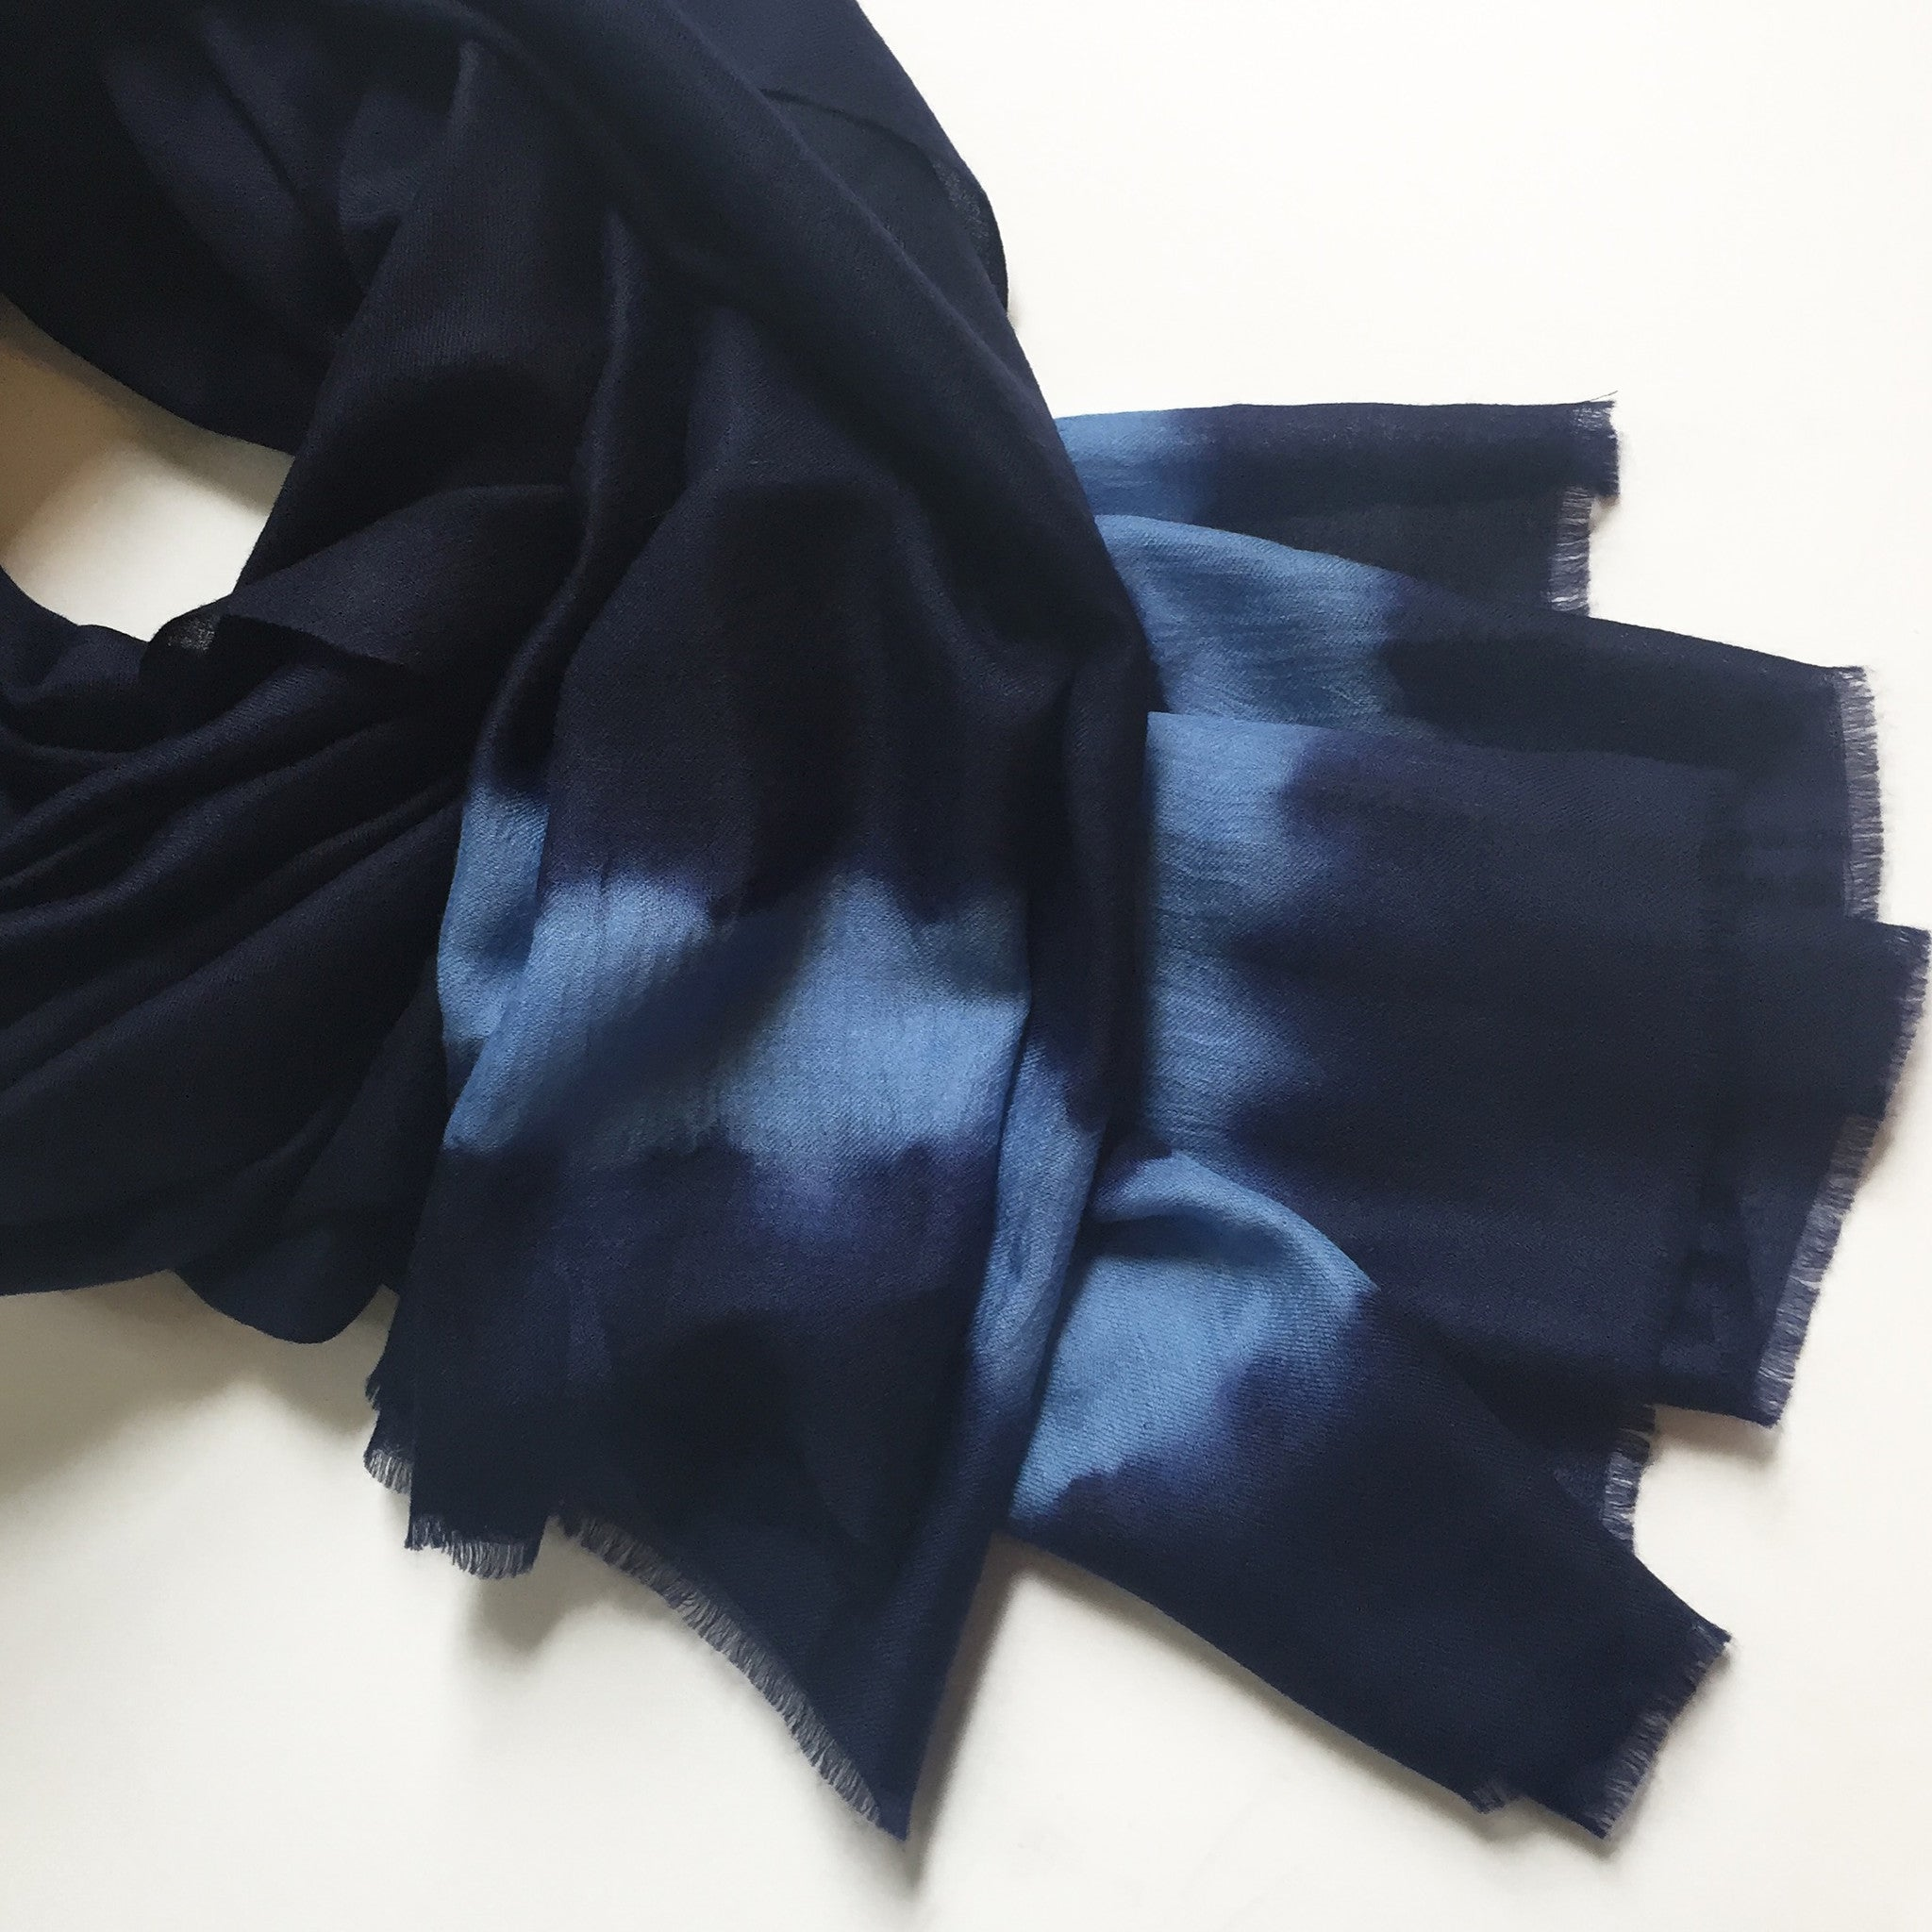 KOSI Flat Scarf - Midnight Stripe